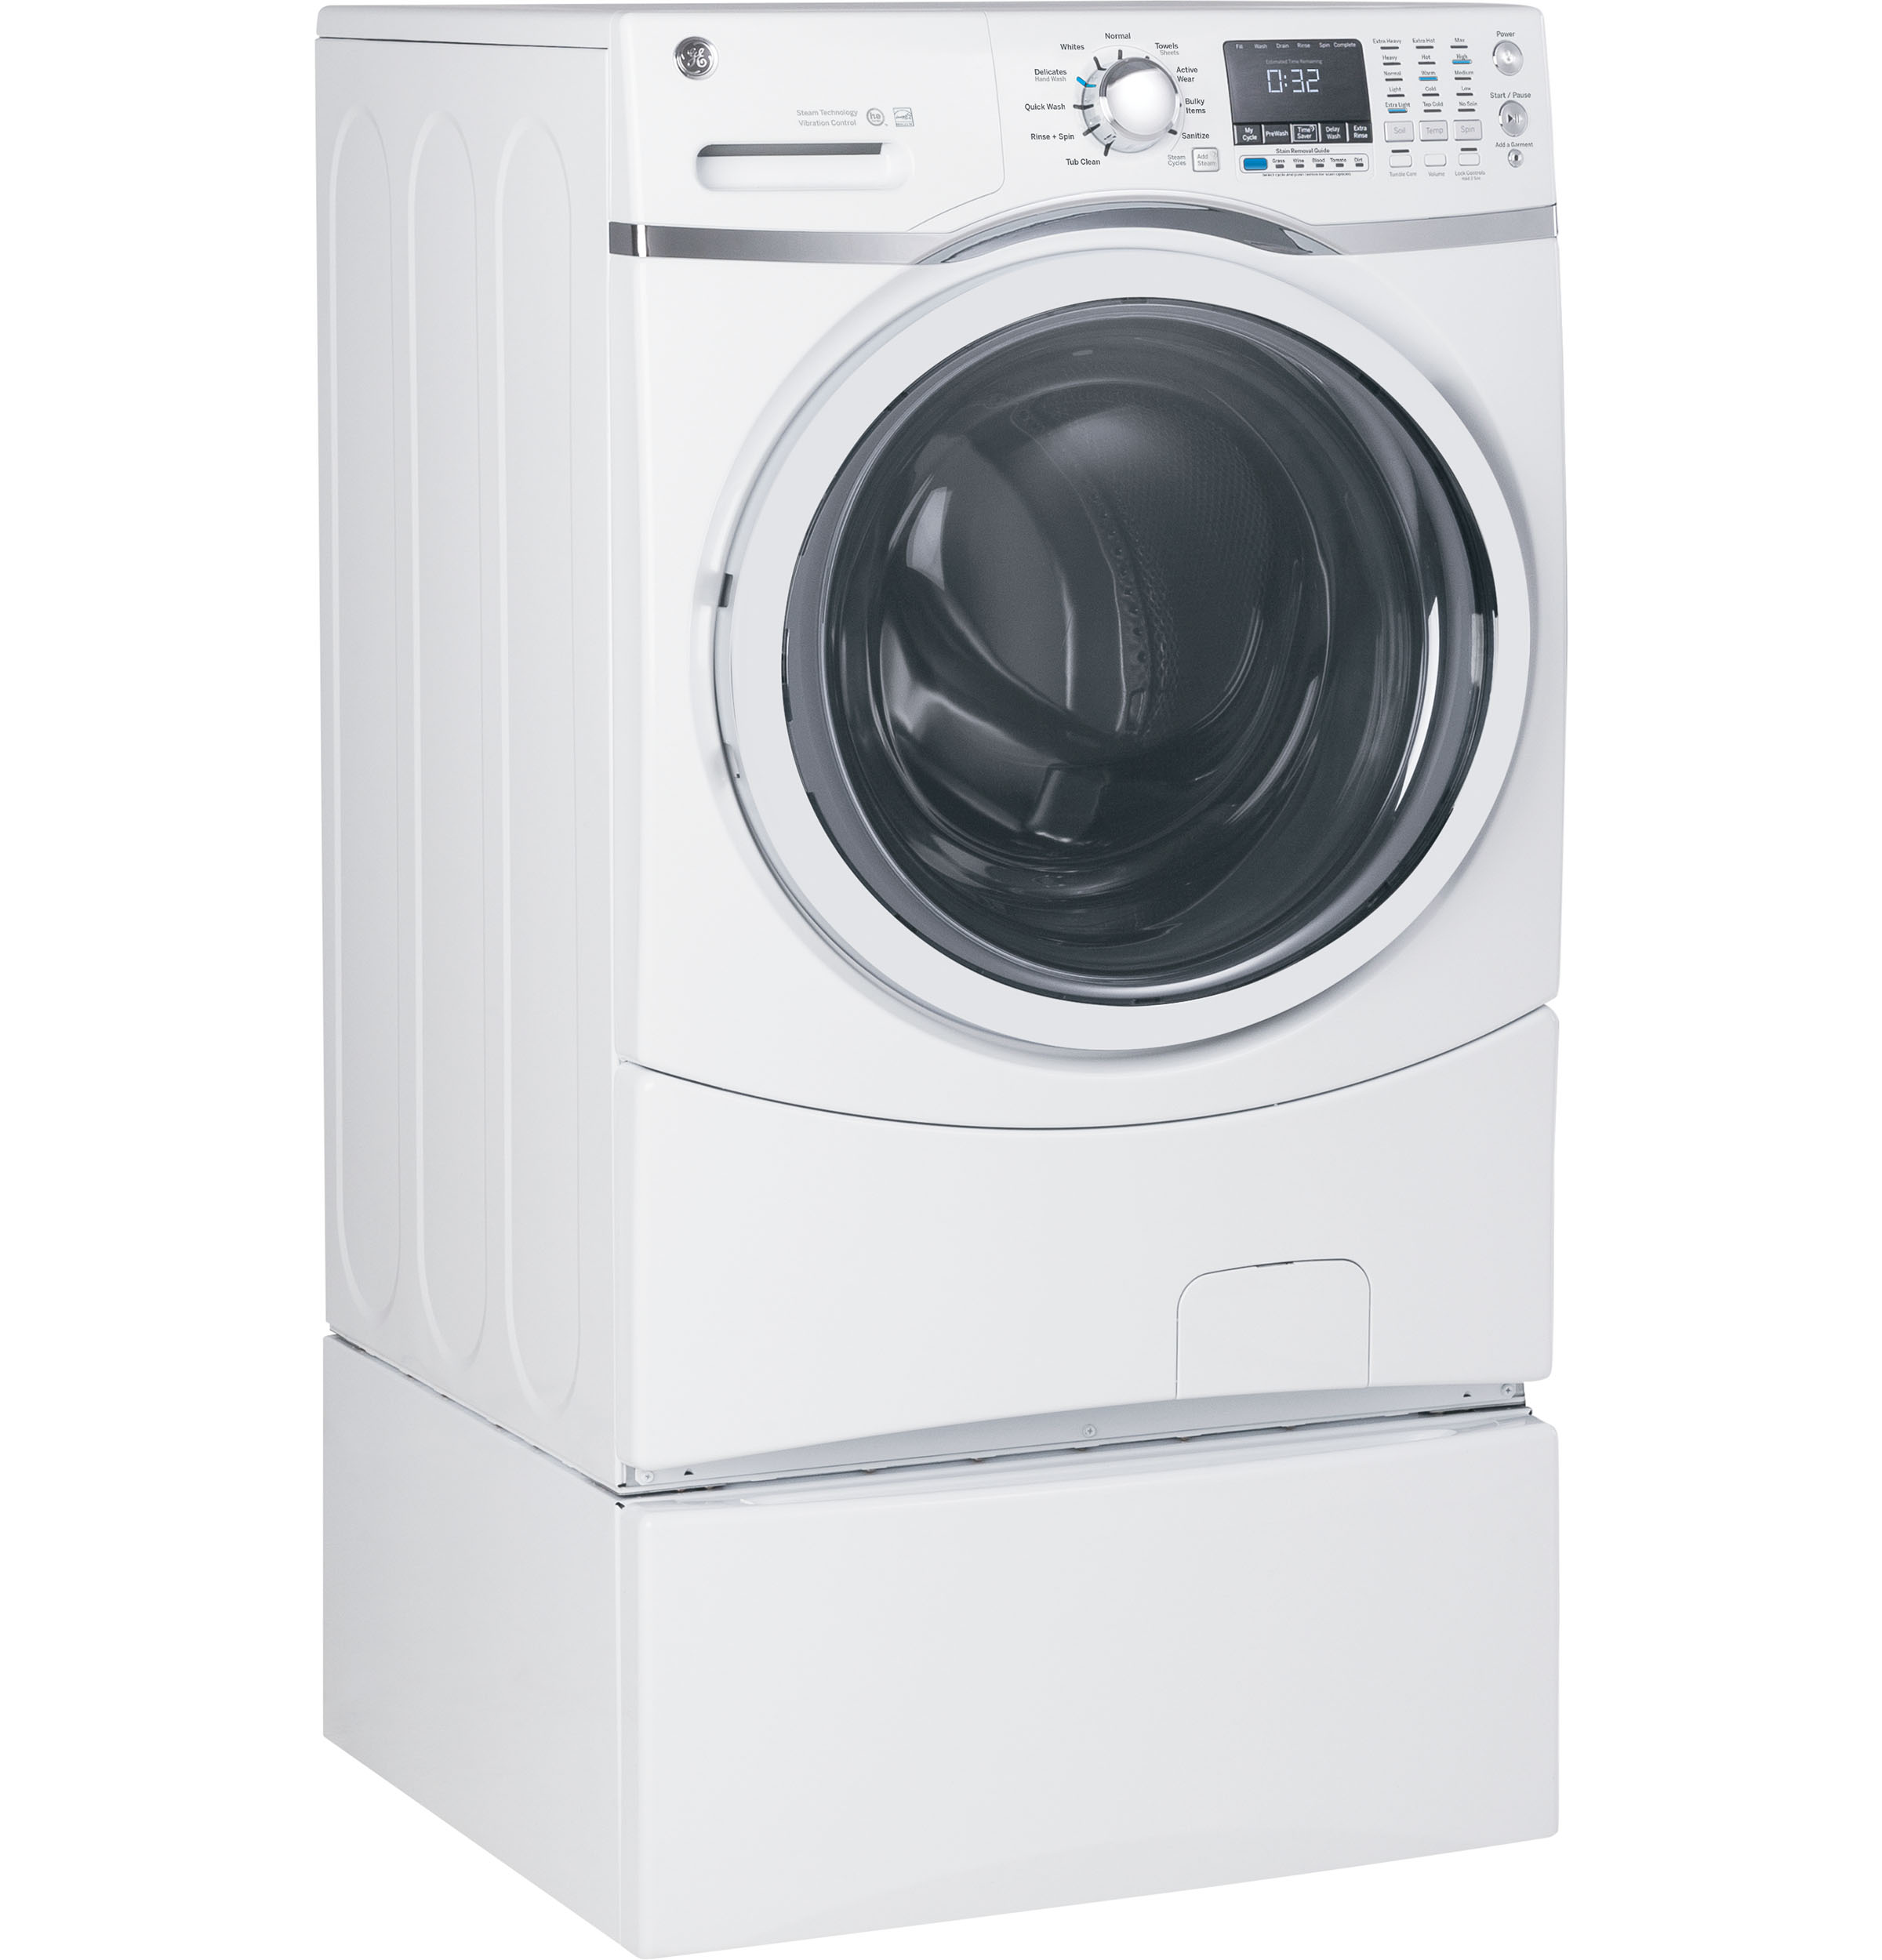 Model: GFW450SSMWW | GE® 4.5 cu. ft. Capacity Front Load ENERGY STAR® Washer with Steam